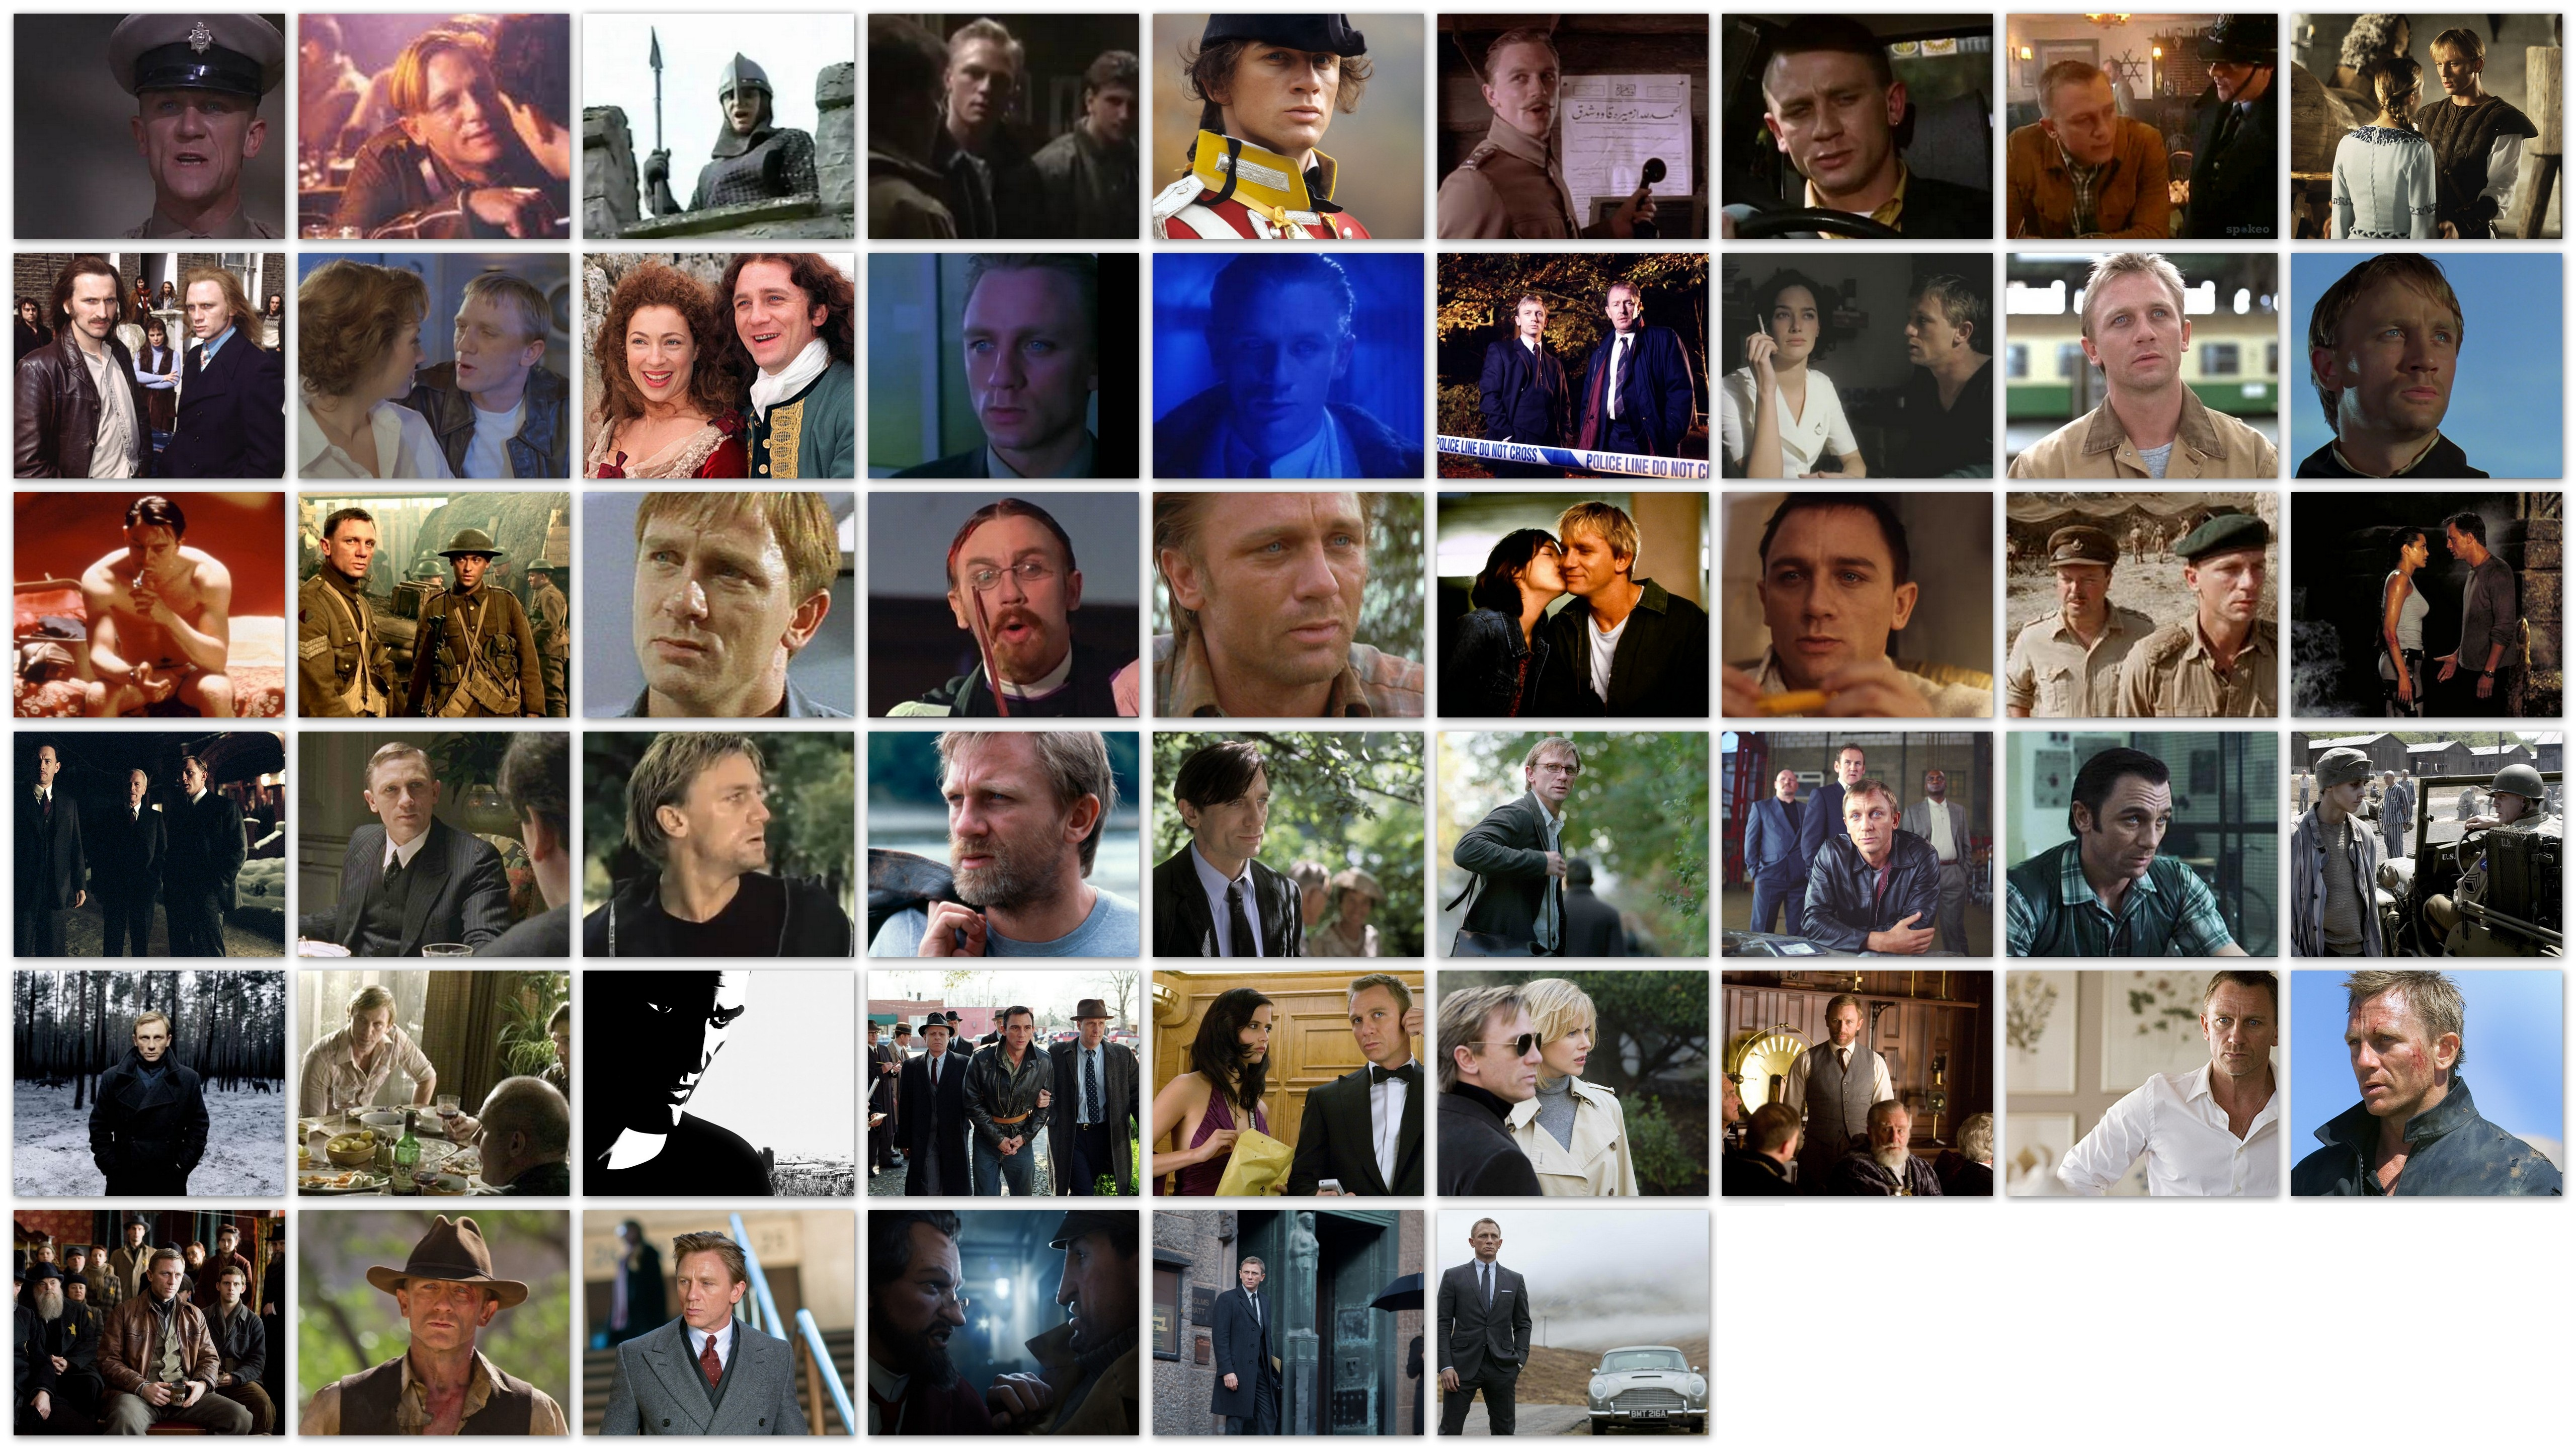 Overview of the roles of Daniel Craig movies